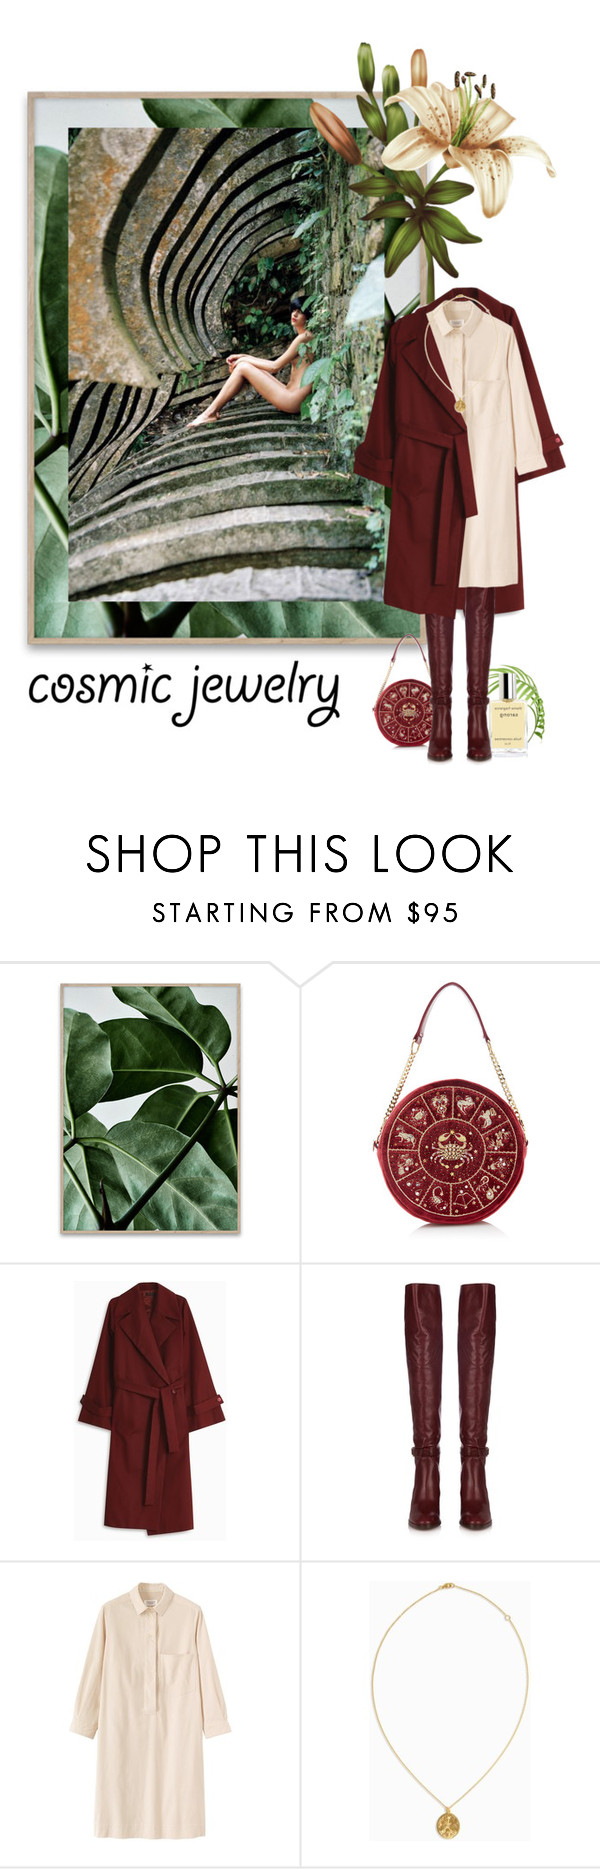 """""""Cancer is my sign"""" by izoche ❤ liked on Polyvore featuring The Row, Chloé, Toast, BROOKE GREGSON, contest, contestentry, ContestOnTheGo and cosmicjewelry"""